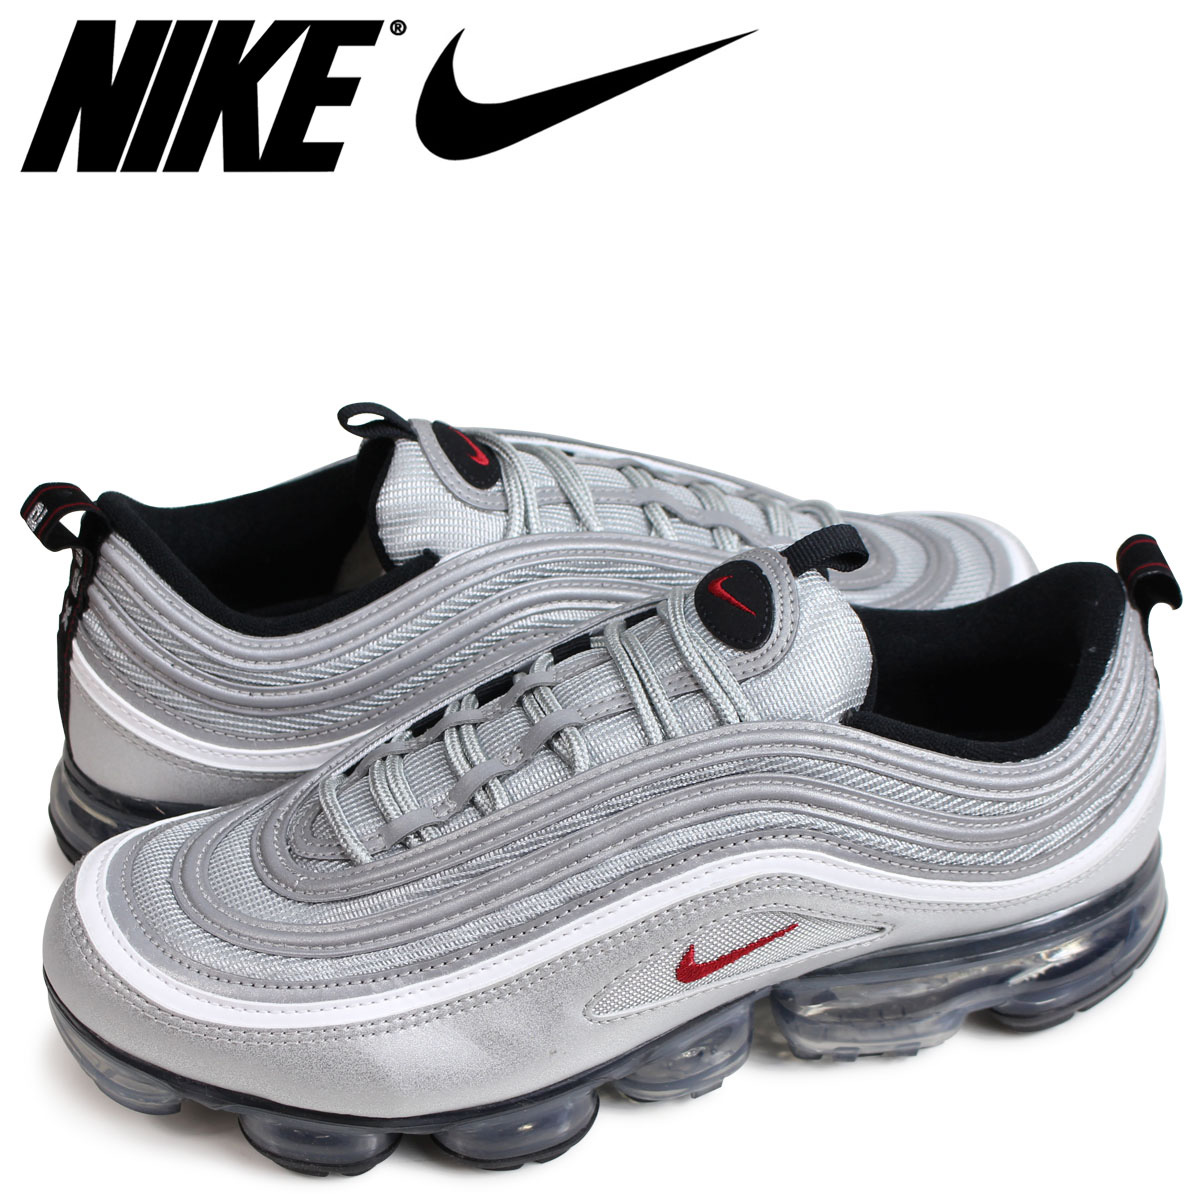 Nike Air Max 97 Nike Air Jordan,Nike Air Max,Nike Kids Shoes